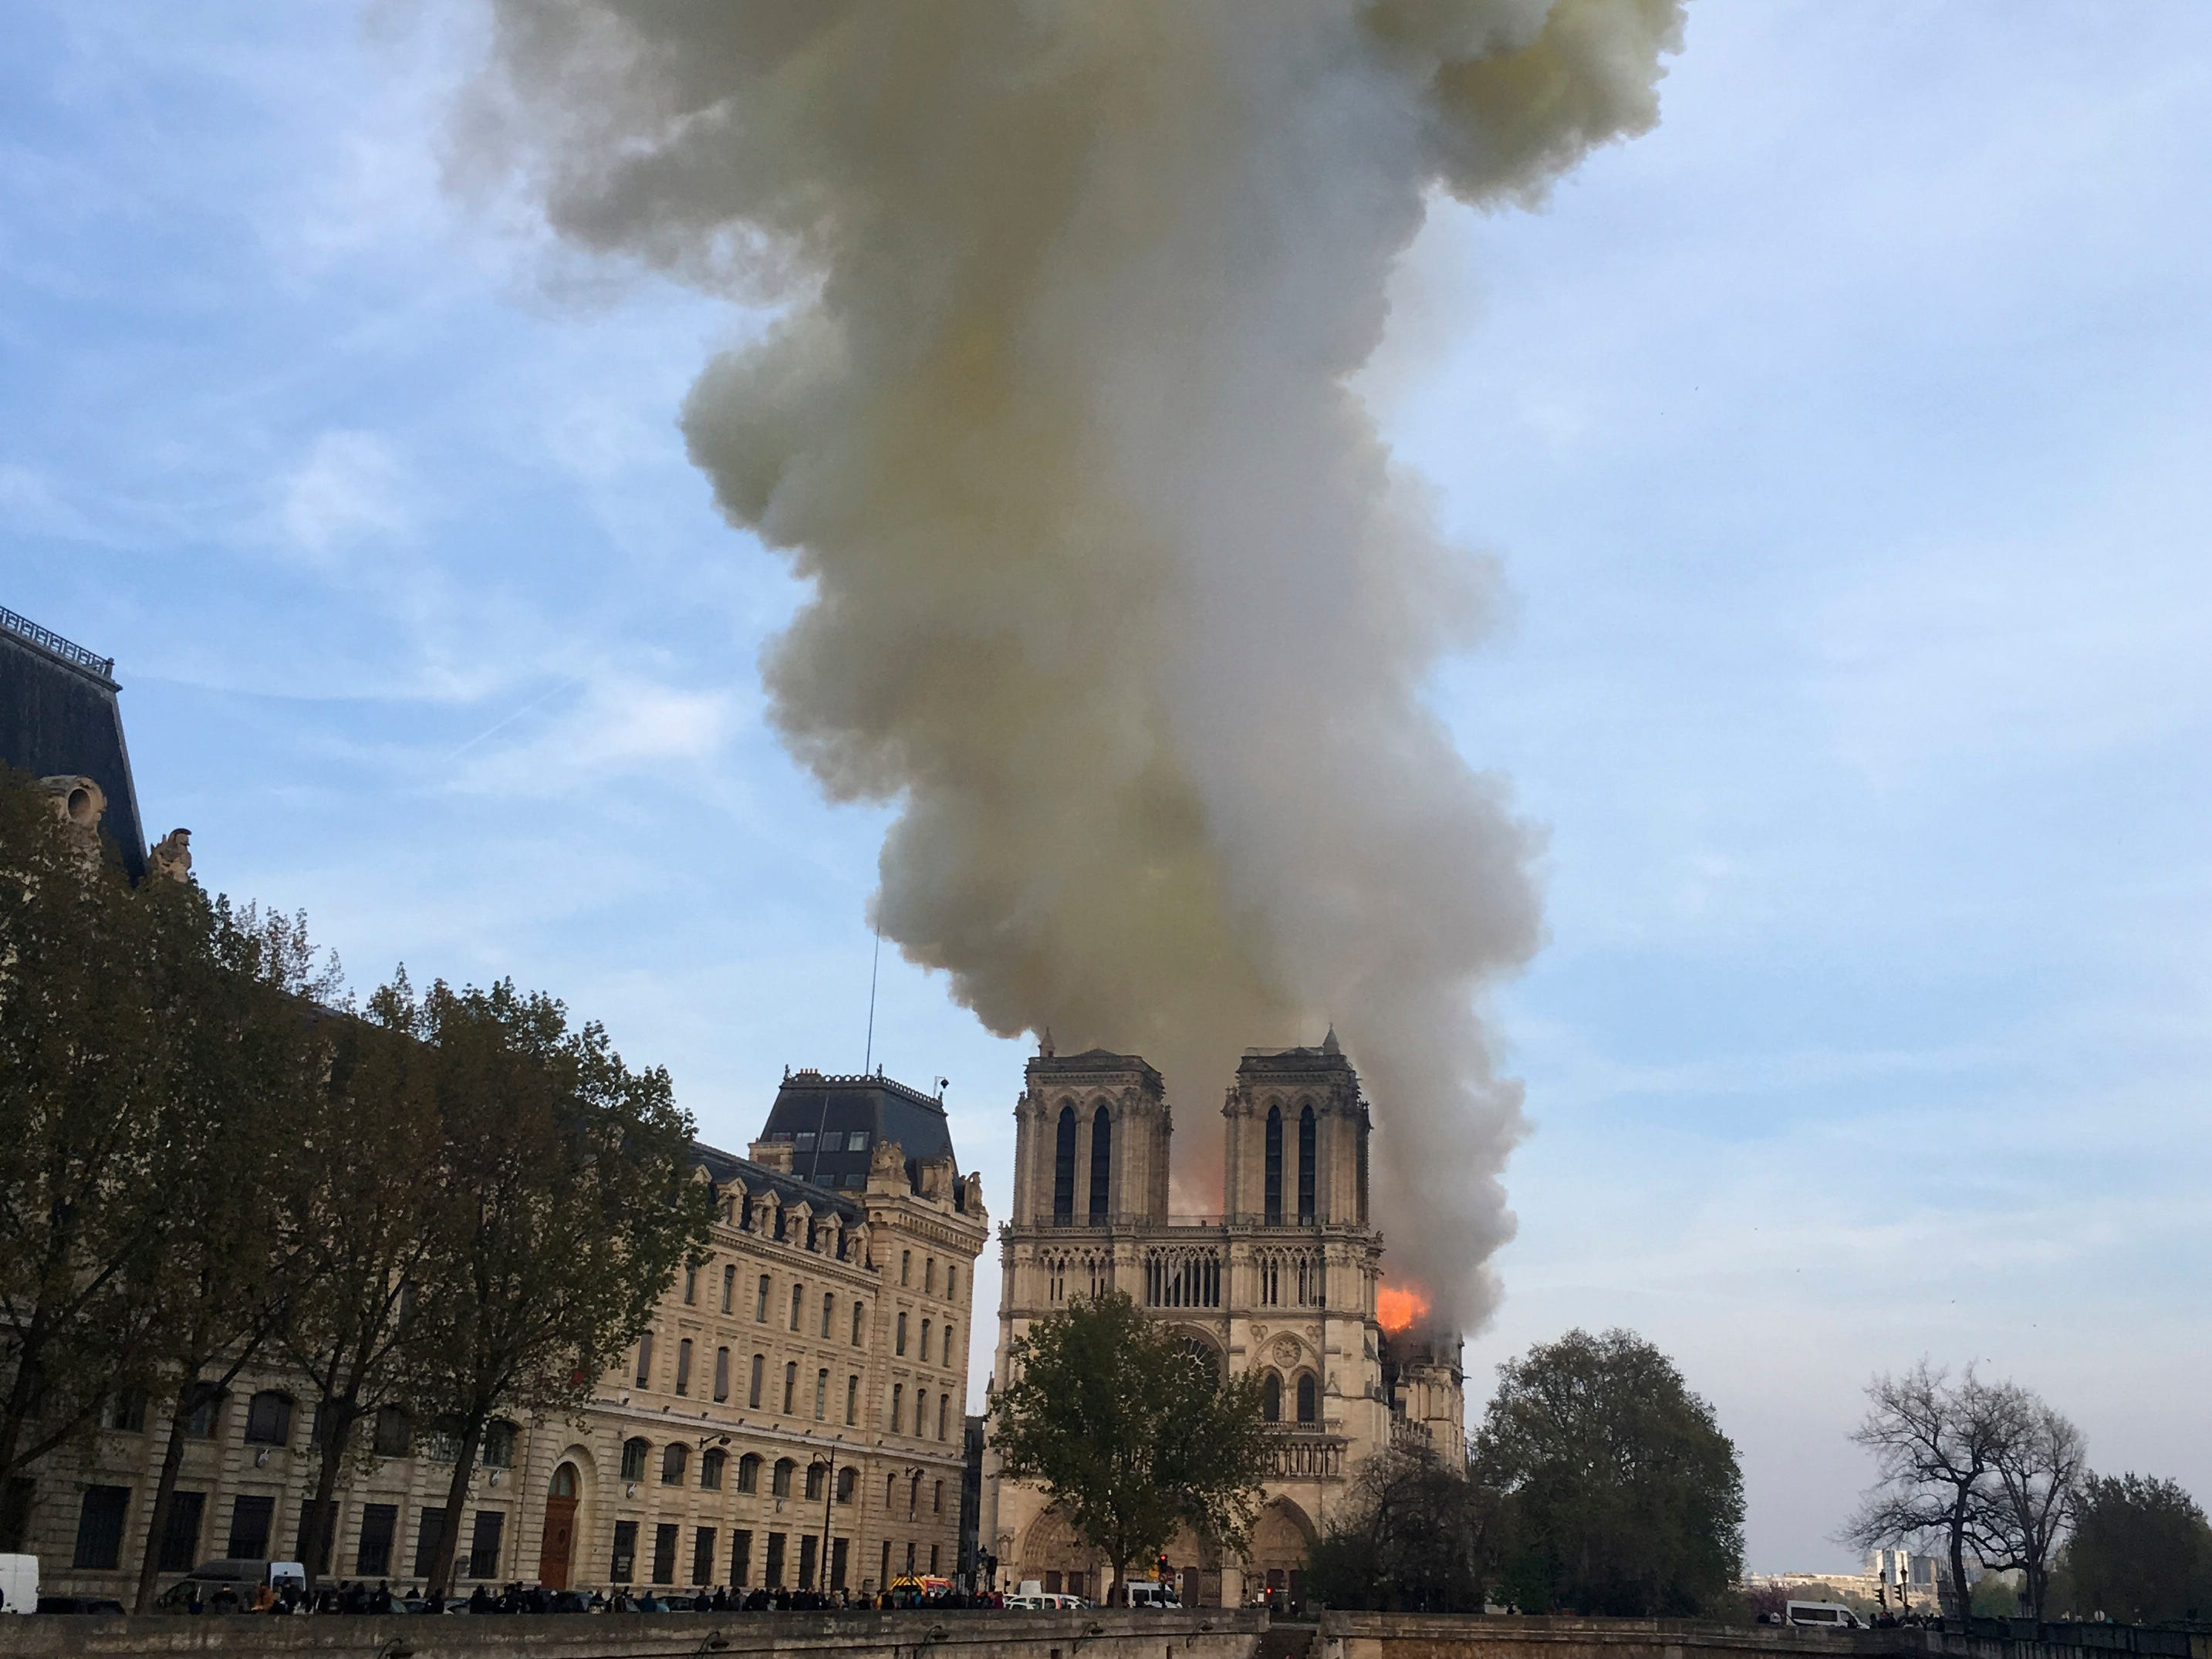 Smoke and flames rise from Notre Dame cathedral in Paris Monday.